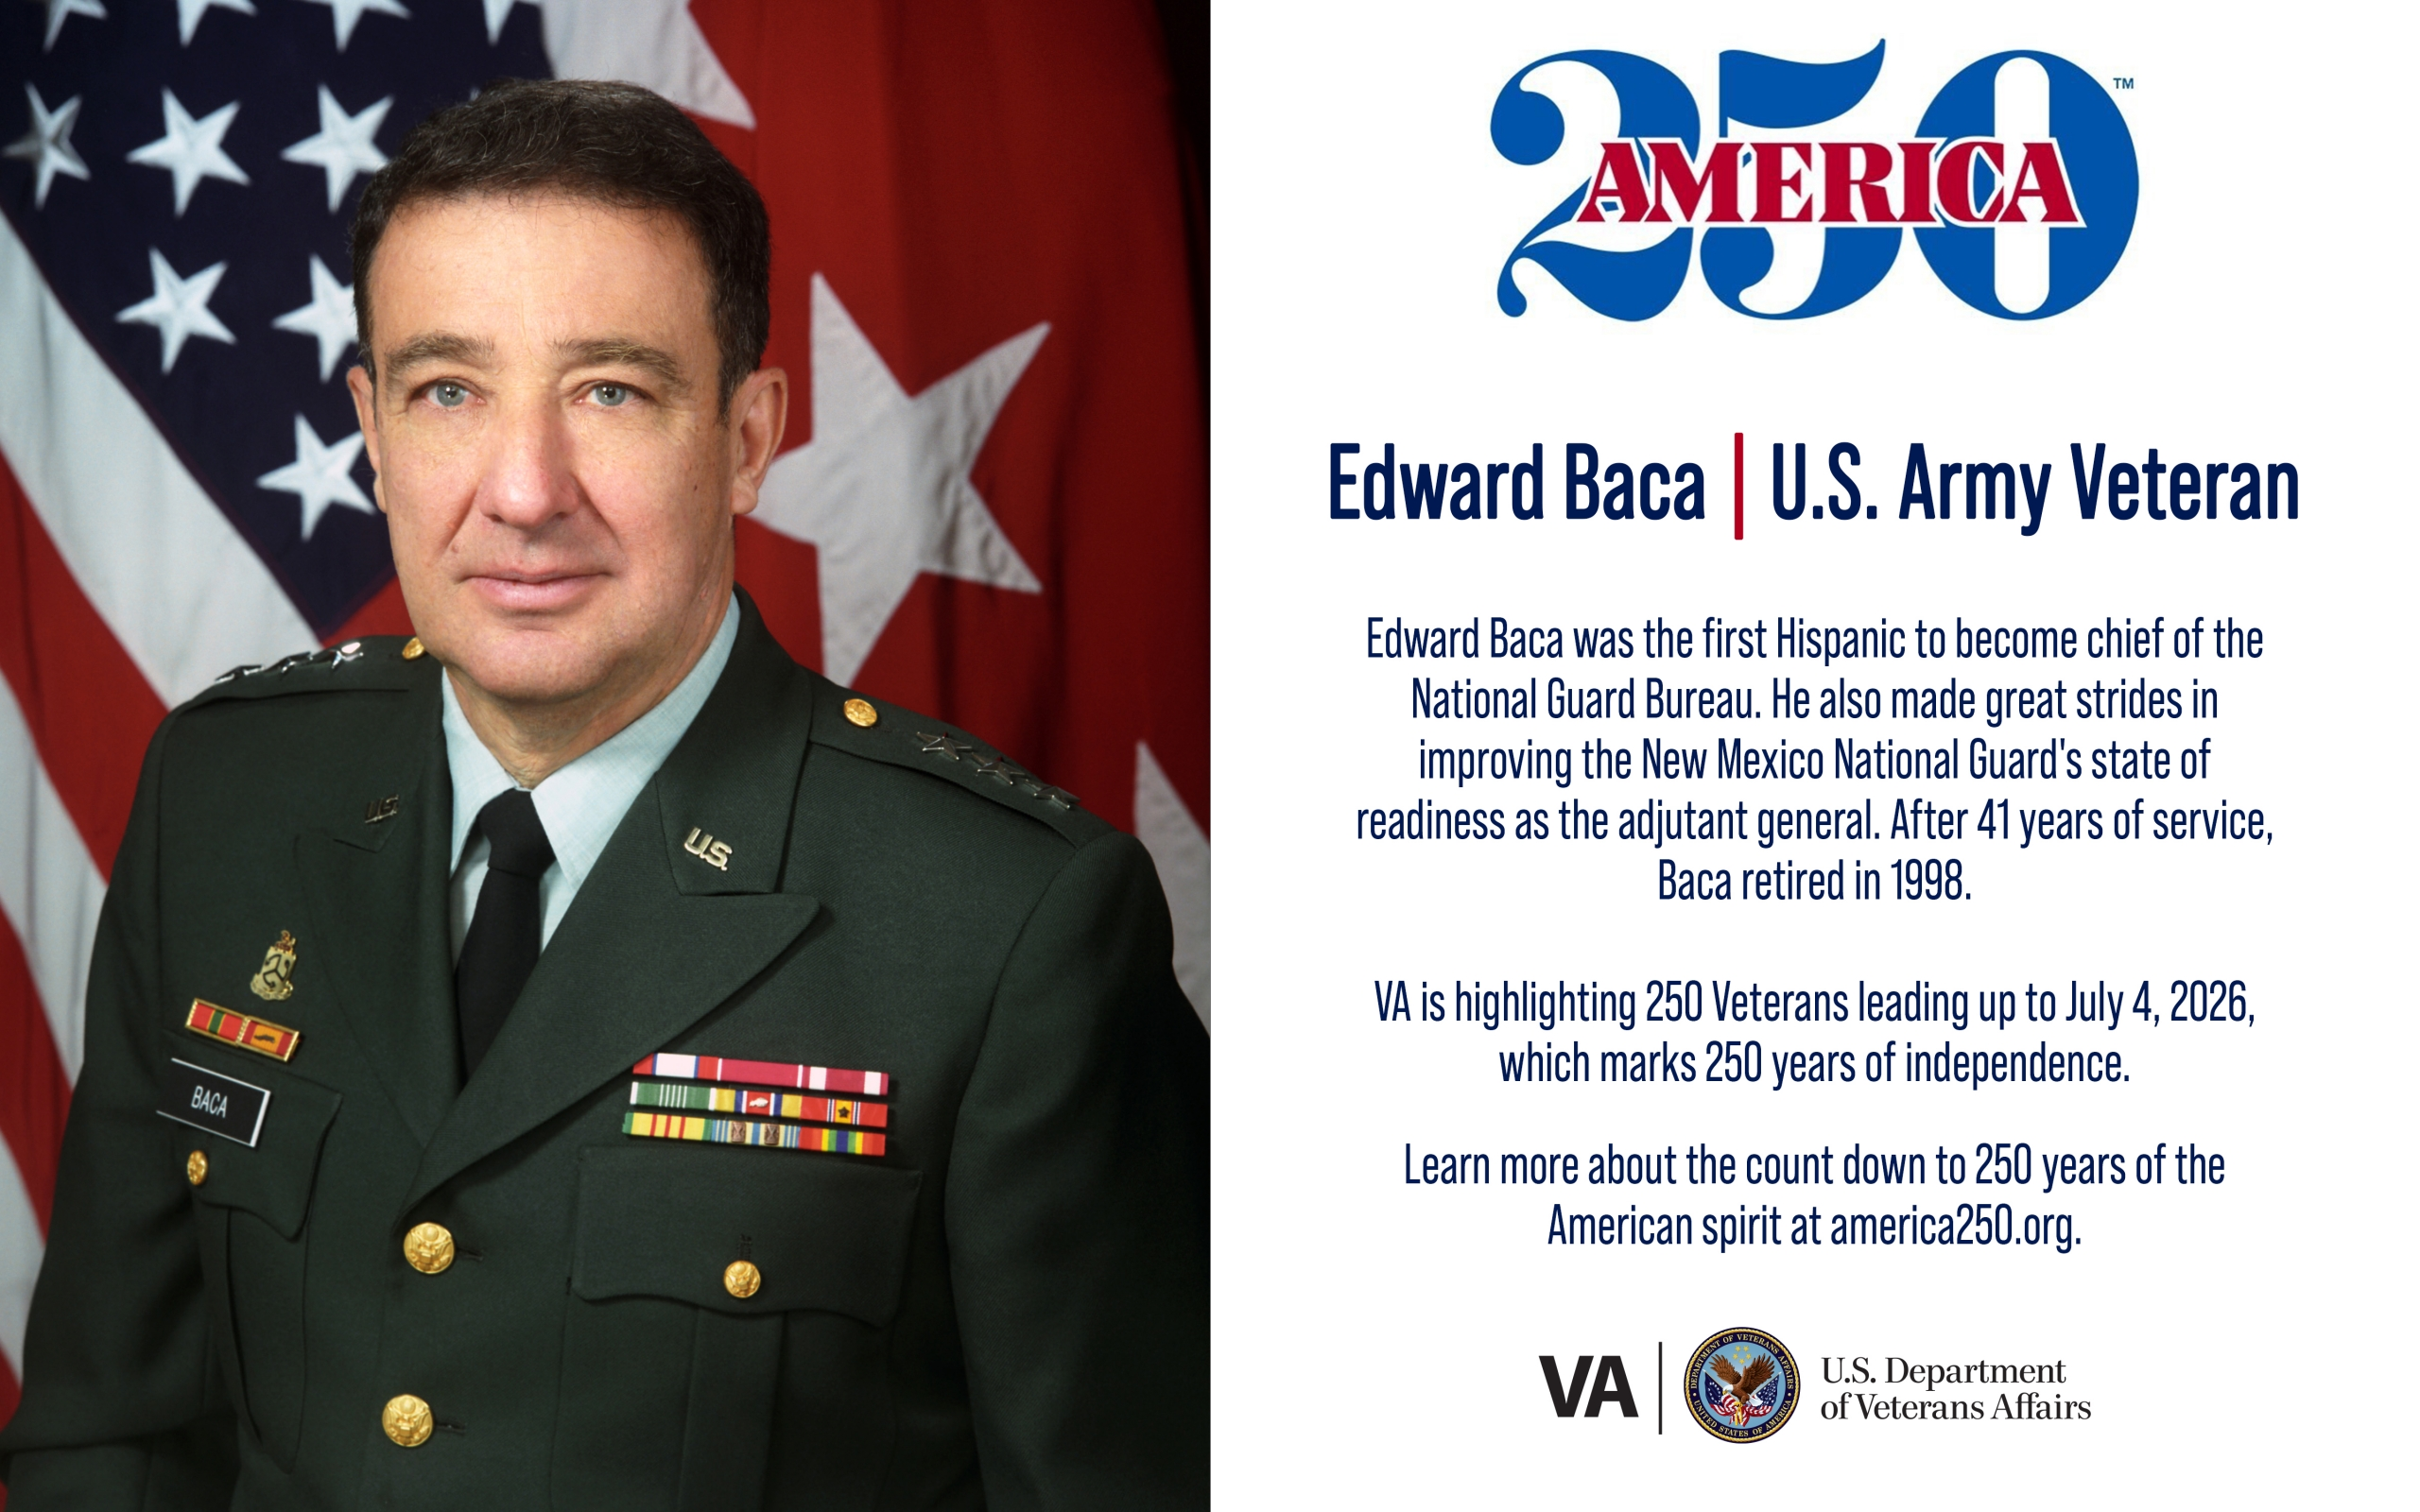 This week's America250 salute is Army Veteran Edward Baca, who was the first Hispanic to become chief of the National Guard Bureau.